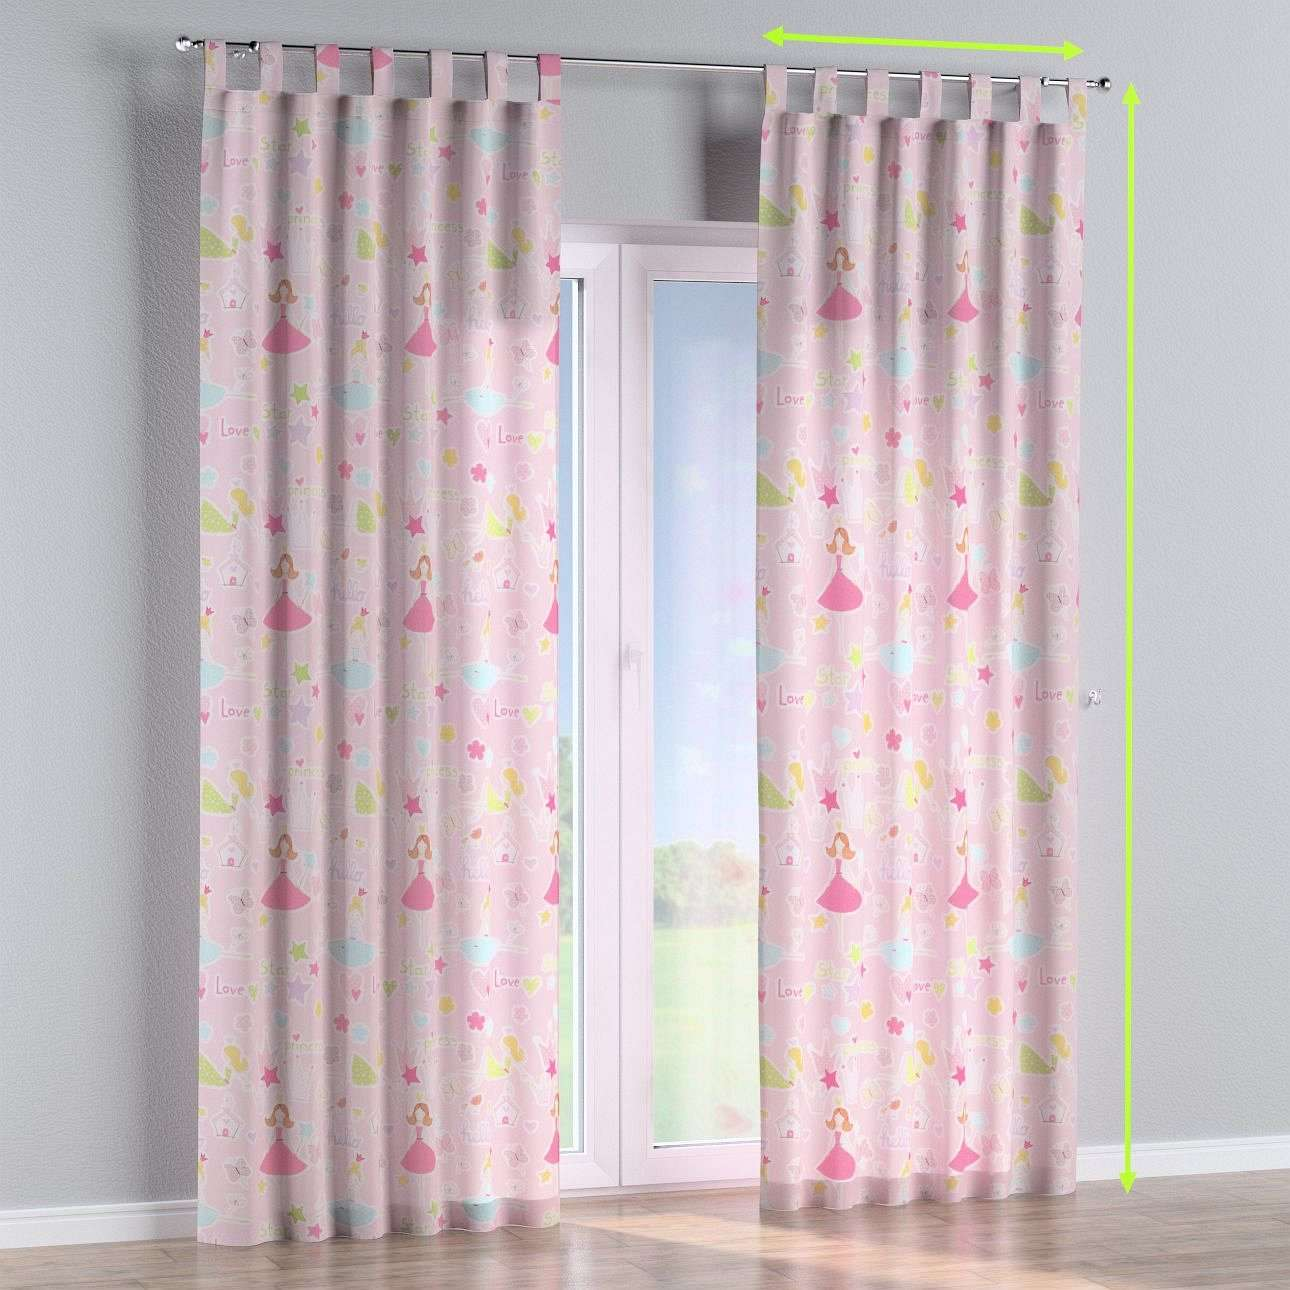 Tab top lined curtains in collection Little World, fabric: 141-50